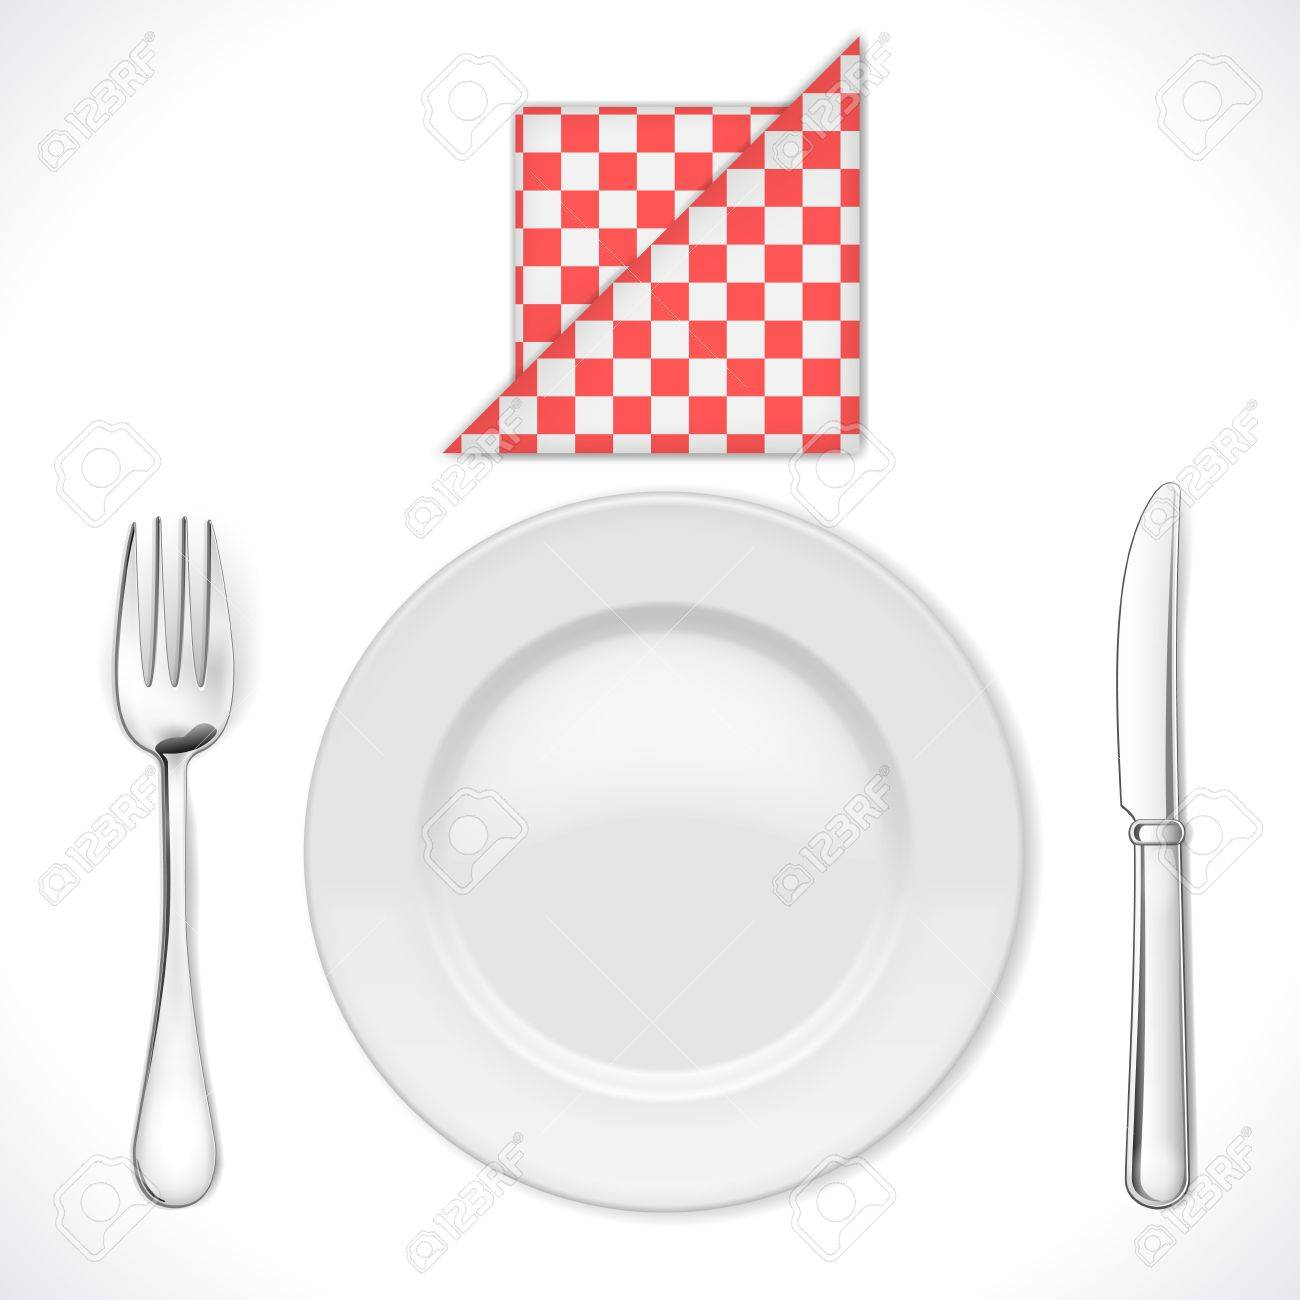 Dinner place setting isolated on white  Illustration Stock Vector - 16242609